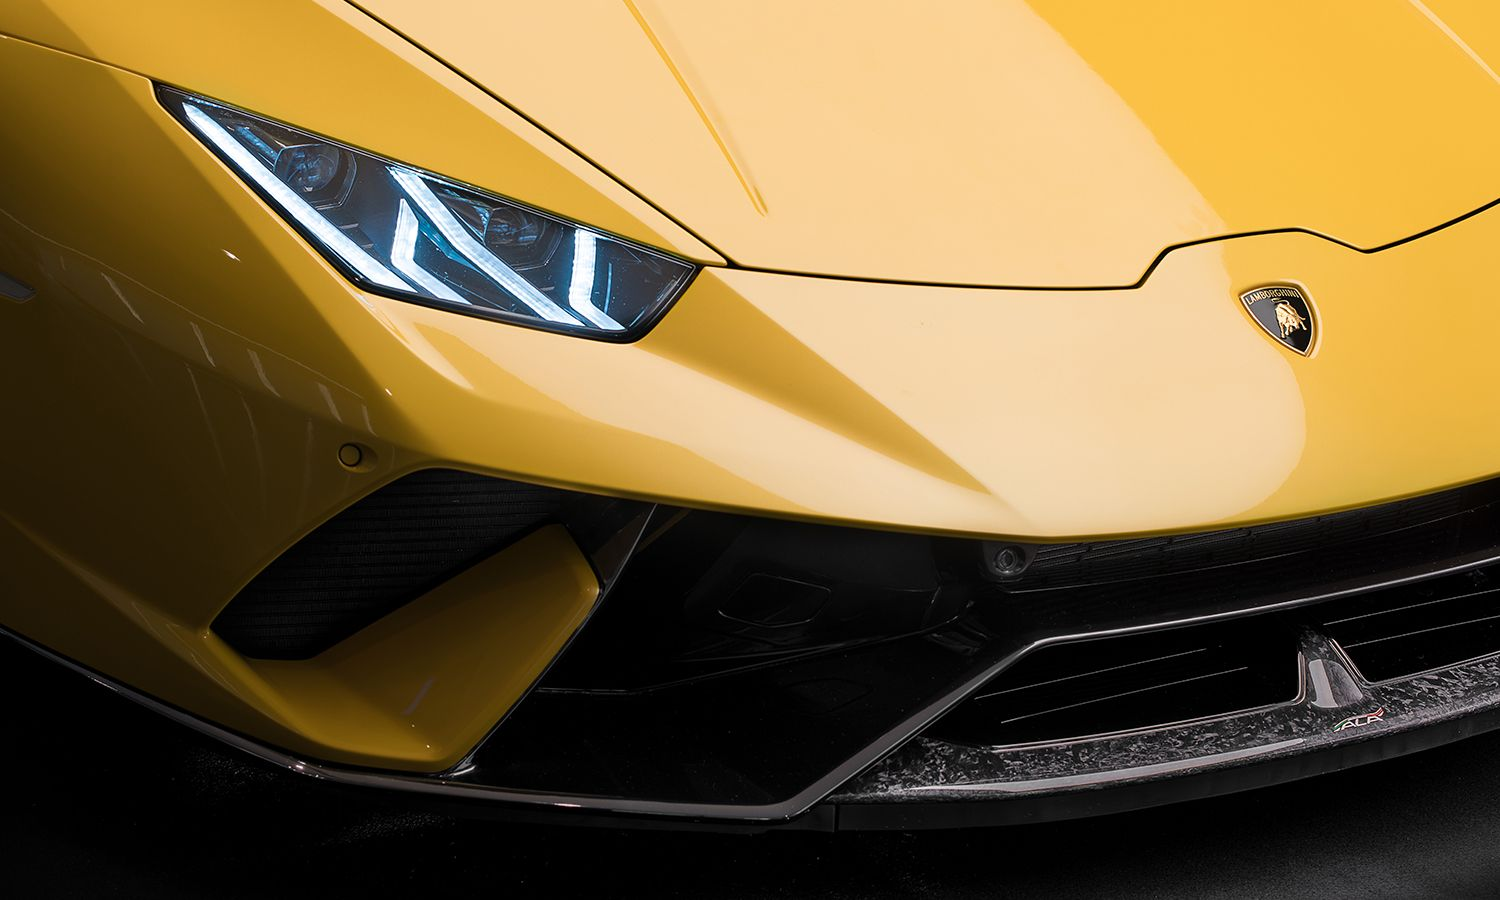 Gone With The Wind: The New Lamborghini Huracán Performante